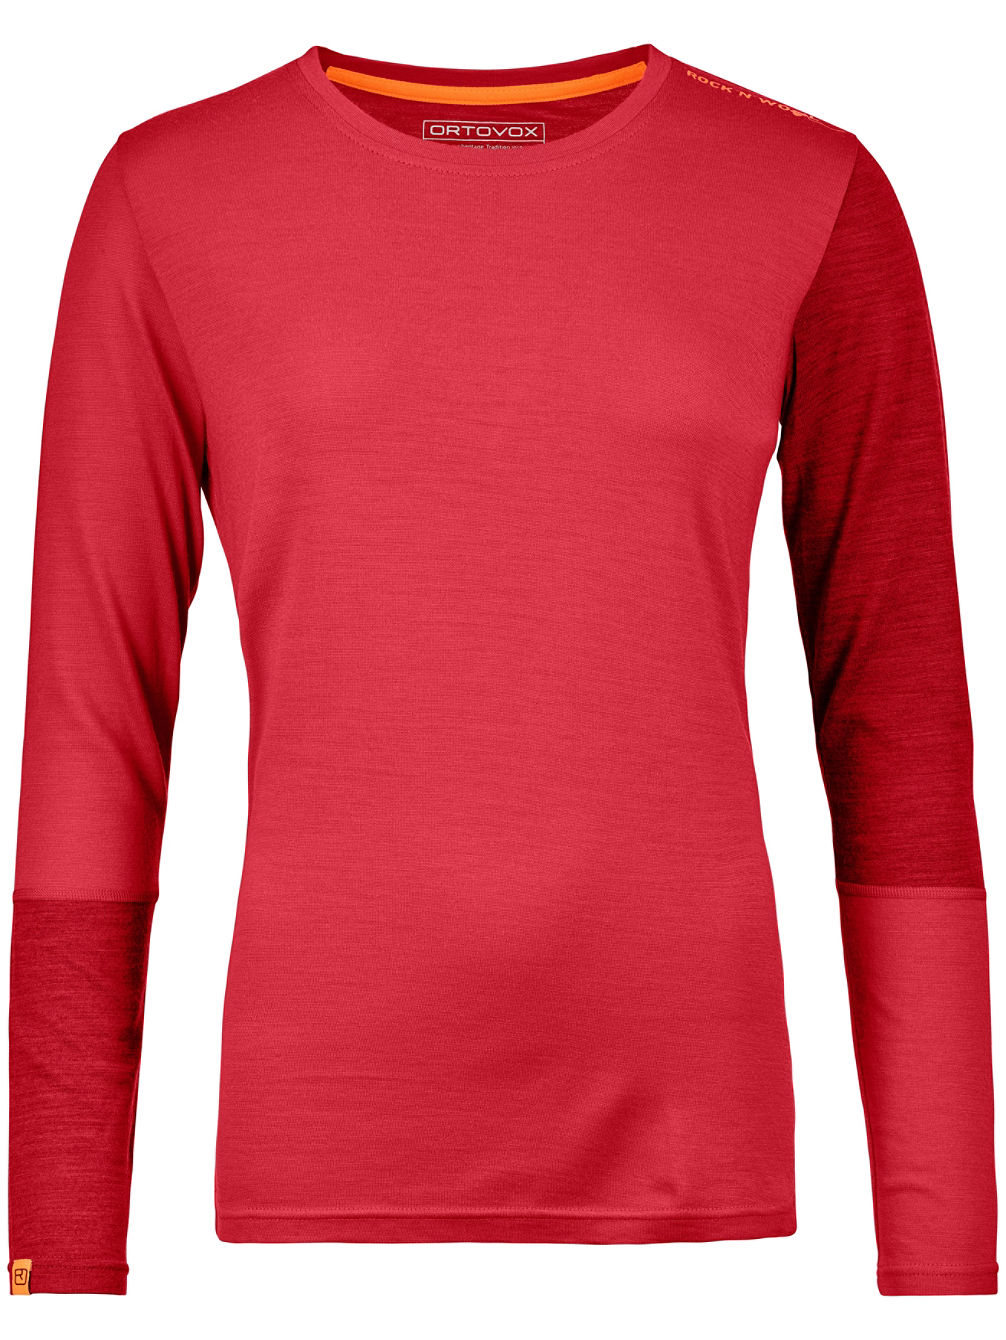 Merino 185 Rock'n'Wool Tech Tee LS